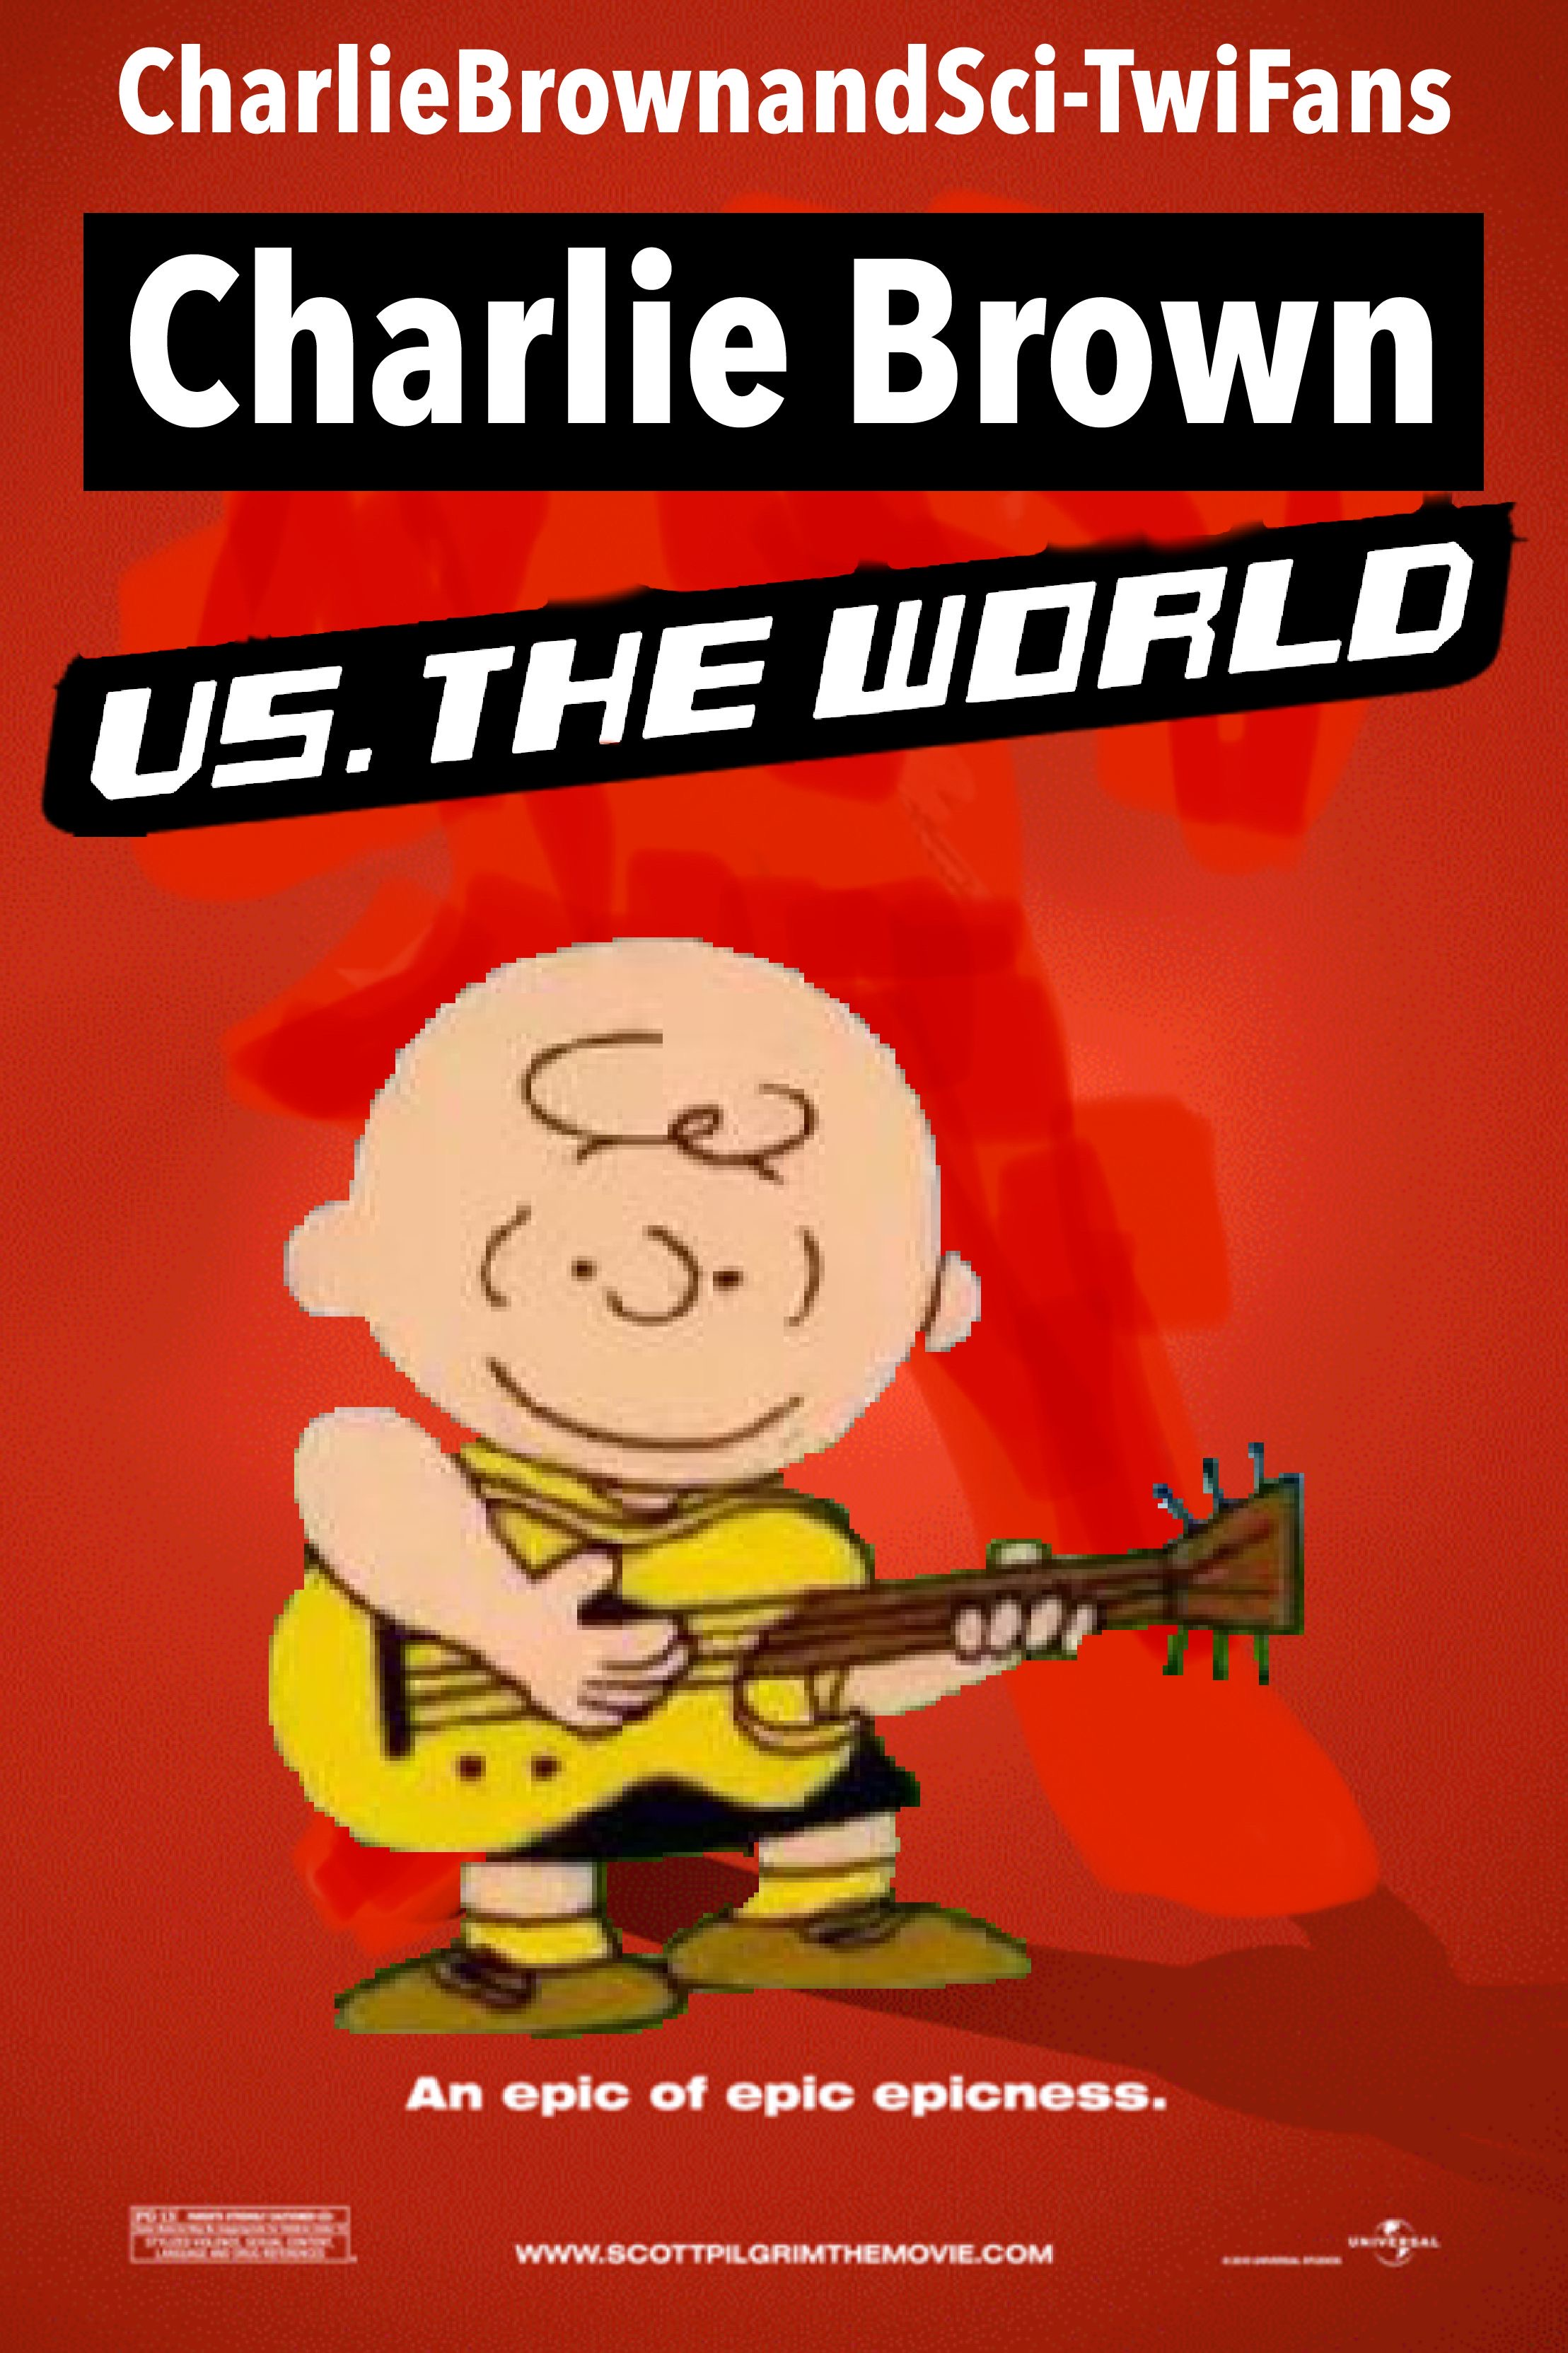 Charlie Brown vs. the World